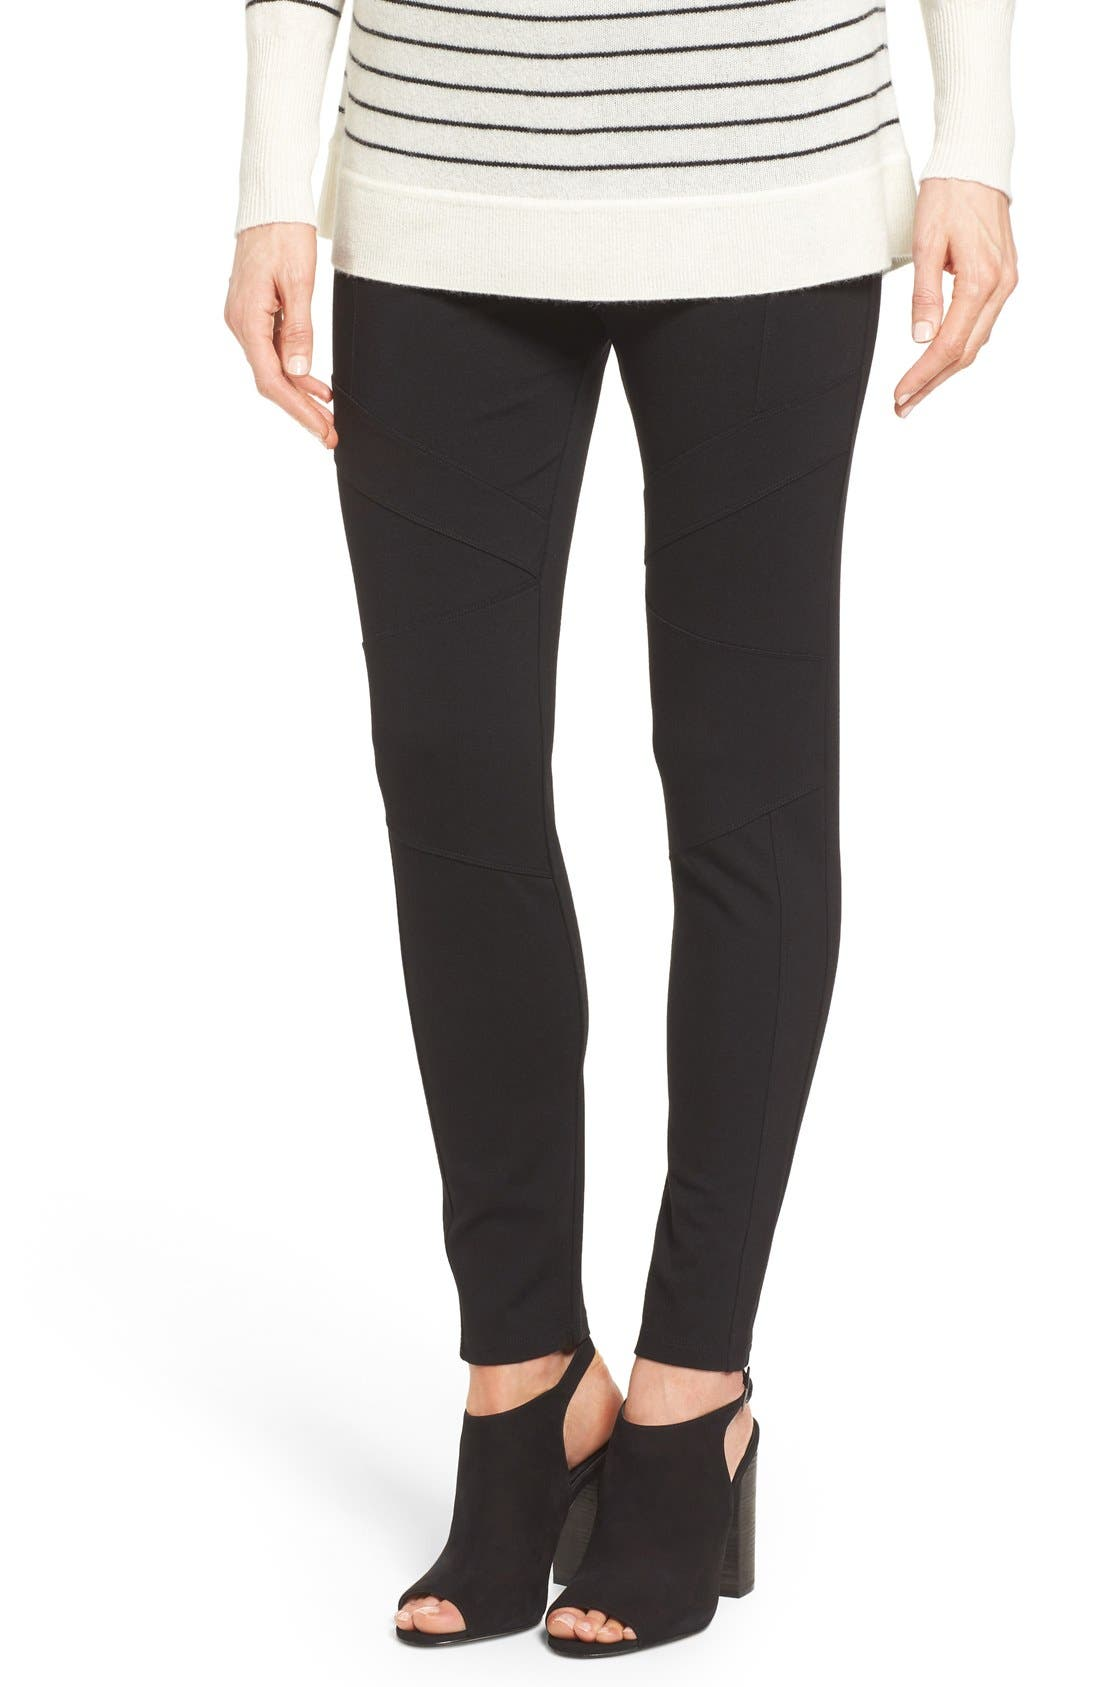 Alternate Image 1 Selected - Two by Vince Camuto Ponte Knit Moto Leggings